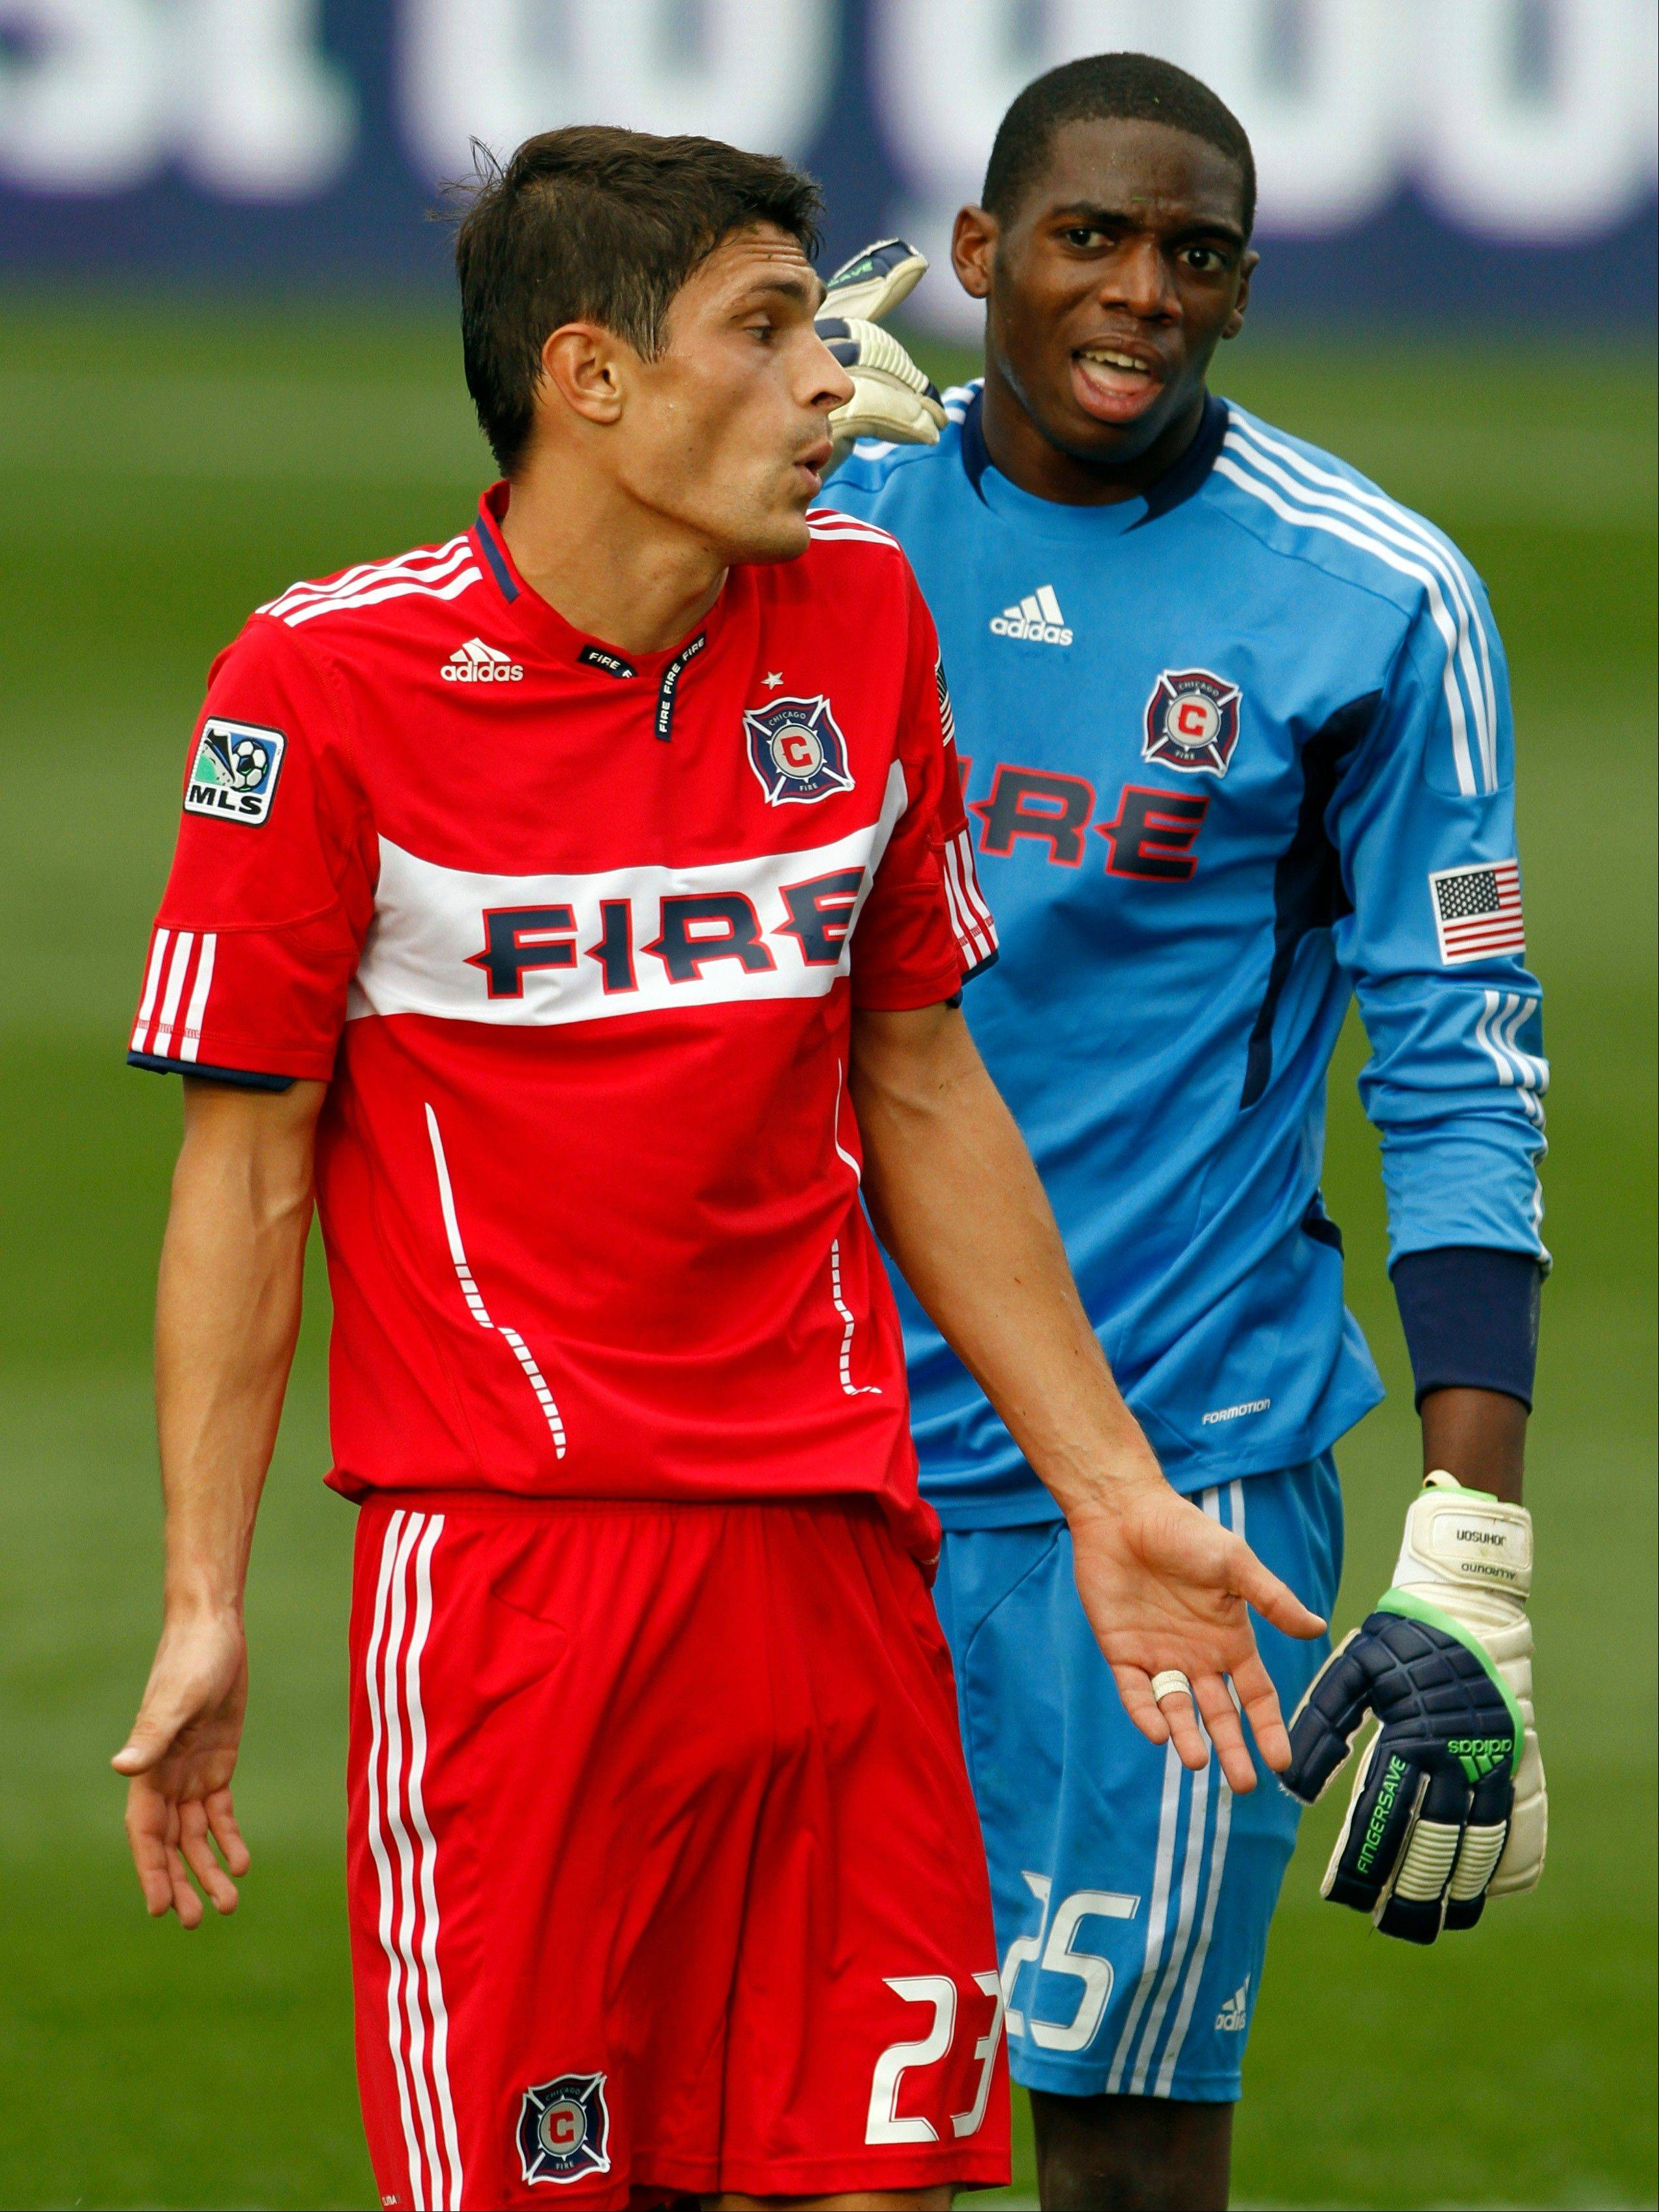 Chicago Fire goalie Sean Johnson, right, argues with teammate Josip Mikulic, left, after a close play in front of the net during the second half of an MLS soccer game in Bridgeview on Sunday, Sept. 25, 2011. The Fire defeated the Revolution 3-2.